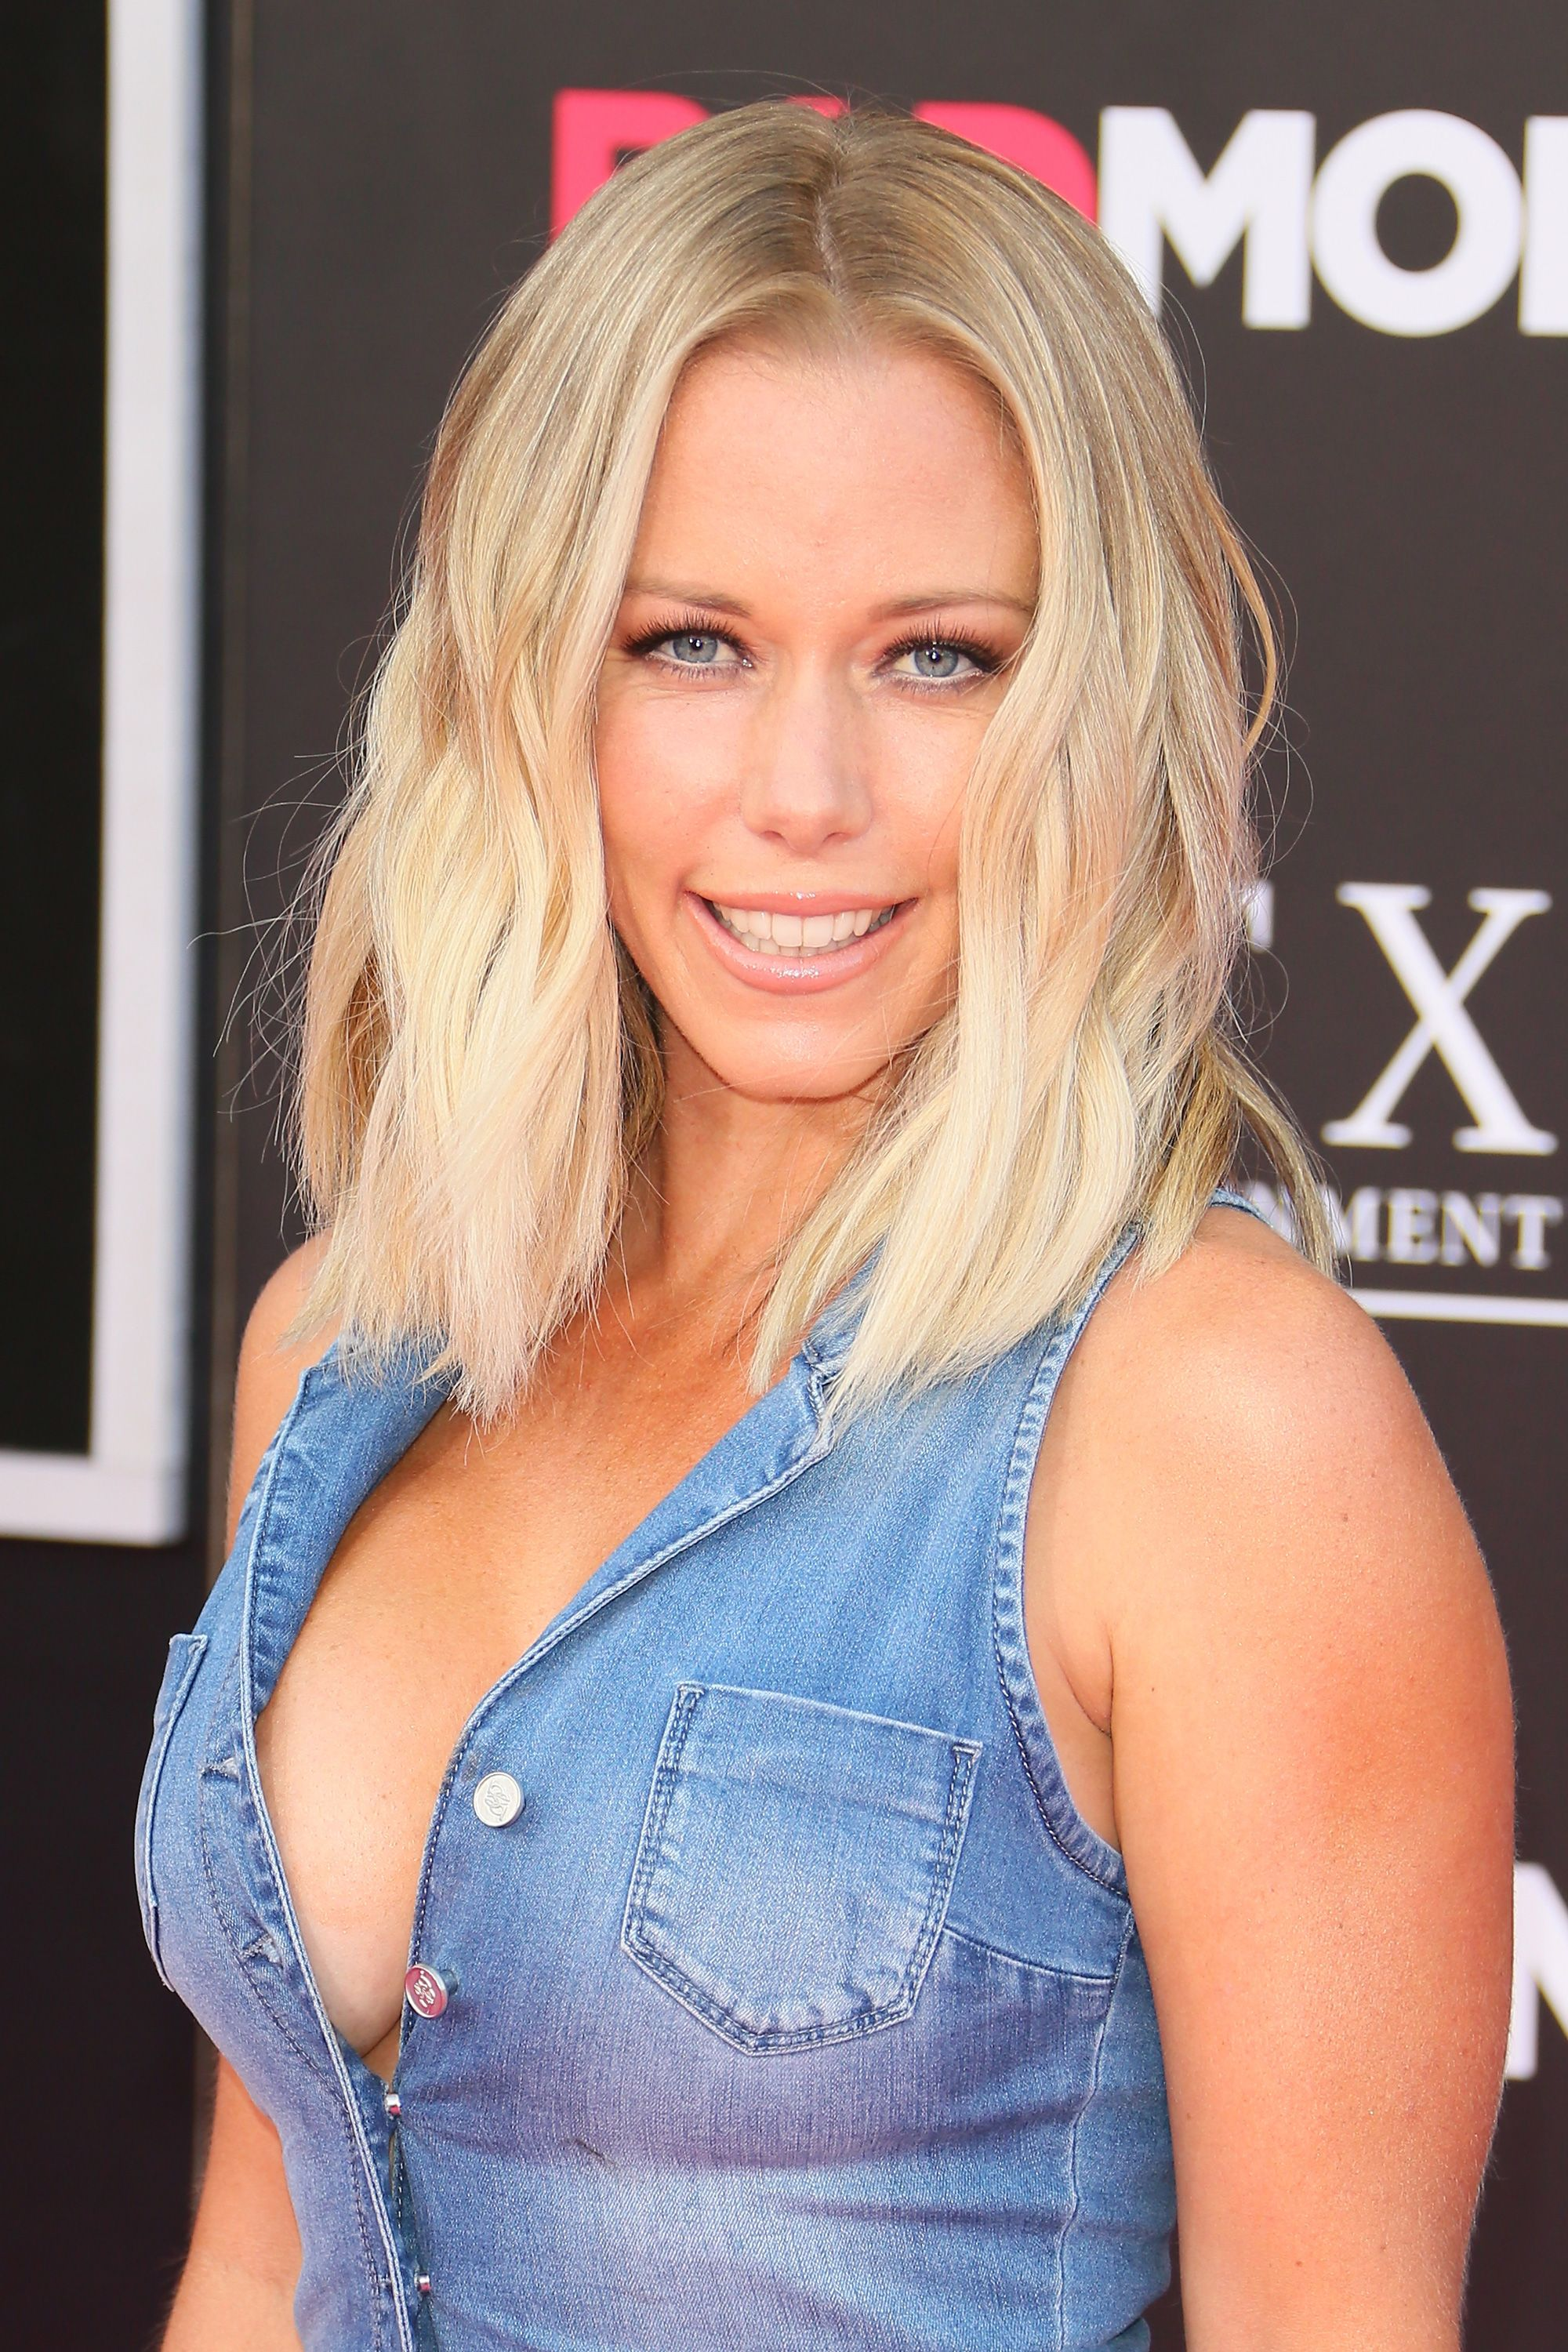 "<p>In 2014, news that Hank Baskett had cheated on&nbsp&#x3B;former&nbsp&#x3B;<em data-verified=""redactor"" data-redactor-tag=""em"">Girls Next Door</em><span class=""redactor-invisible-space"" data-verified=""redactor"" data-redactor-tag=""span"" data-redactor-class=""redactor-invisible-space""> star <a href=""http://www.redbookmag.com/life/a44166/kendra-wilkinson-holly-madison-twitter-feud/"" target=""_blank"" data-tracking-id=""recirc-text-link"">Kendra Wilkinson</a>&nbsp&#x3B;with a transgender model&nbsp&#x3B;while his wife&nbsp&#x3B;was 8 months pregnant with their daughter.&nbsp&#x3B;</span></p><p><span class=""redactor-invisible-space"" data-verified=""redactor"" data-redactor-tag=""span"" data-redactor-class=""redactor-invisible-space"">They eventually reconciled, and in a 2015 joint interview with&nbsp&#x3B;<em data-verified=""redactor"" data-redactor-tag=""em"">People</em><span class=""redactor-invisible-space"" data-verified=""redactor"" data-redactor-tag=""span"" data-redactor-class=""redactor-invisible-space"">, <a href=""http://people.com/tv/kendra-wilkinson-hank-baskett-reveal-the-truth-about-sex-scandal/"" target=""_blank"" data-tracking-id=""recirc-text-link"">Wilkinson said</a> of the scandal:&nbsp&#x3B;""I don't say the word 'cheat.' I can say he was not loyal to me. I don't care about the act. I care about how he reacted to it and how I was told by the media what happened. That scarred me.<span class=""redactor-invisible-space"" data-verified=""redactor"" data-redactor-tag=""span"" data-redactor-class=""redactor-invisible-space"">""</span></span></span></p>"